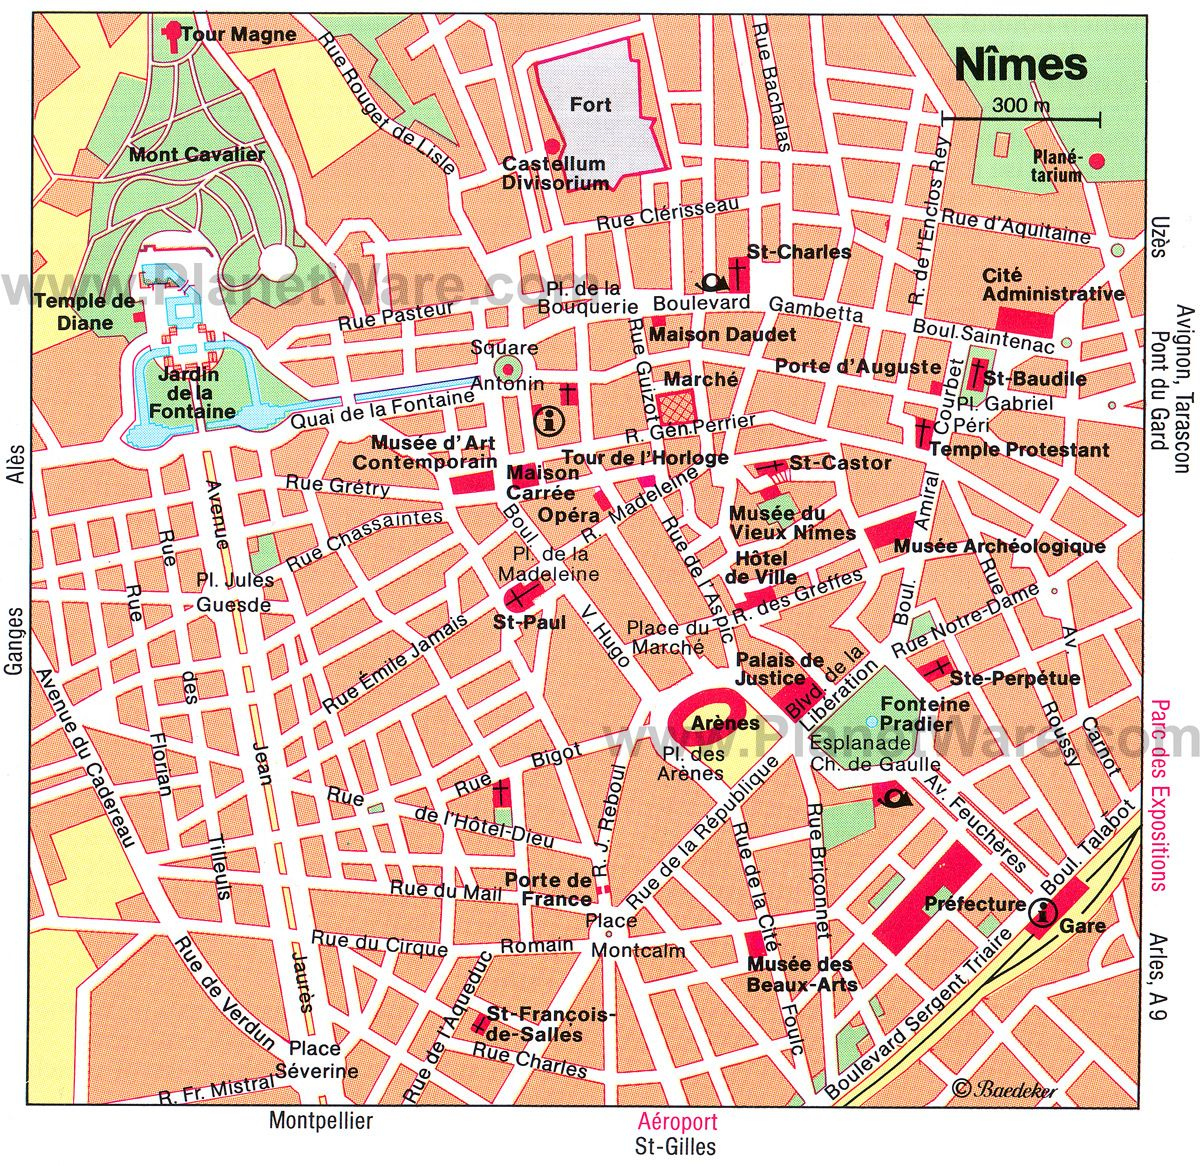 NIMES Detailed Map Tourist Attractions Travel France Lacoste